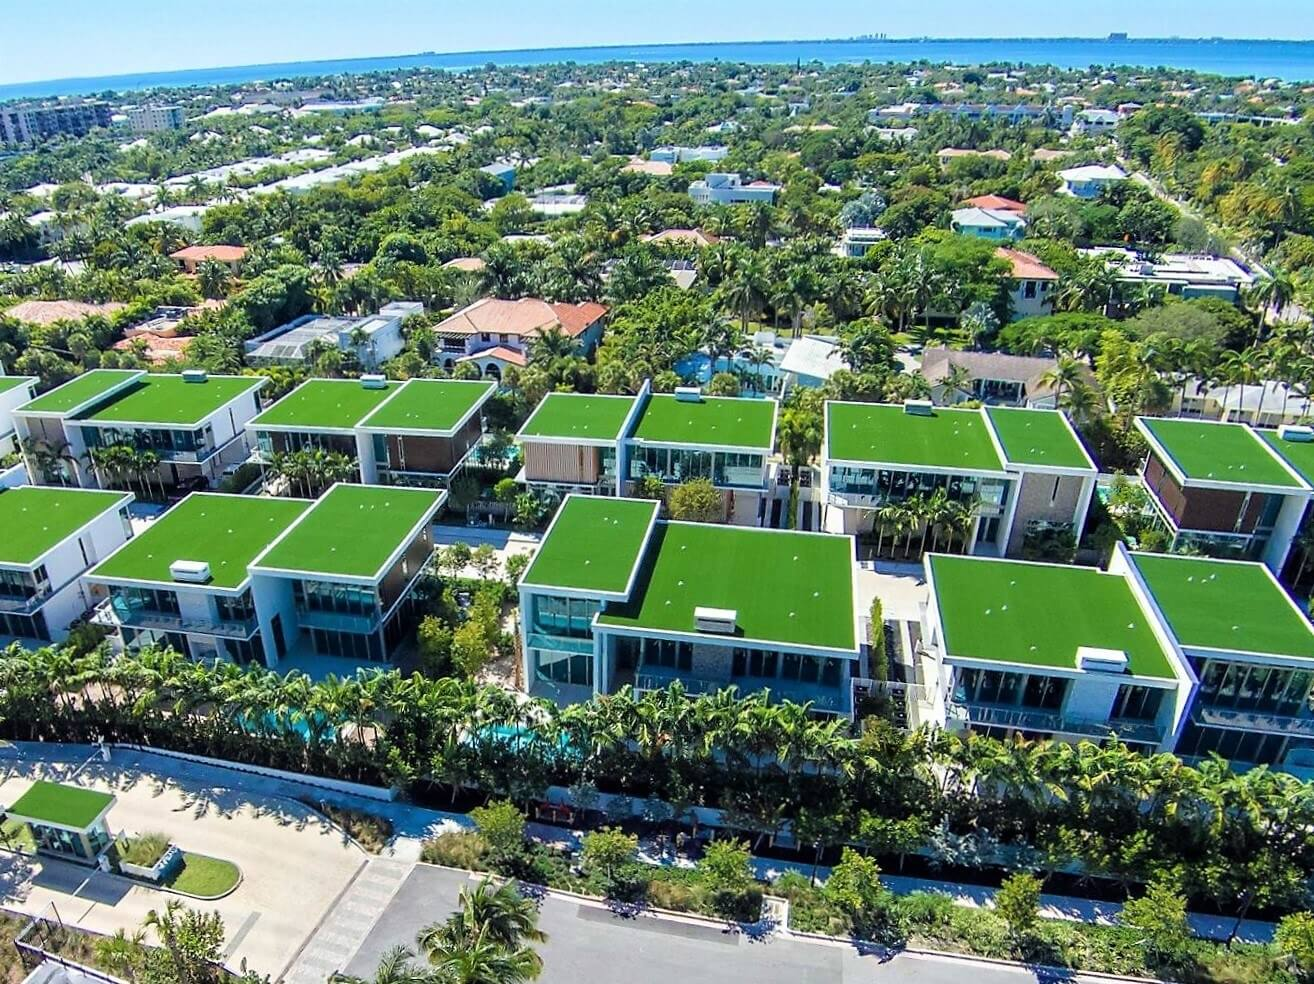 Astroturf Pinnacle A Roofing Company